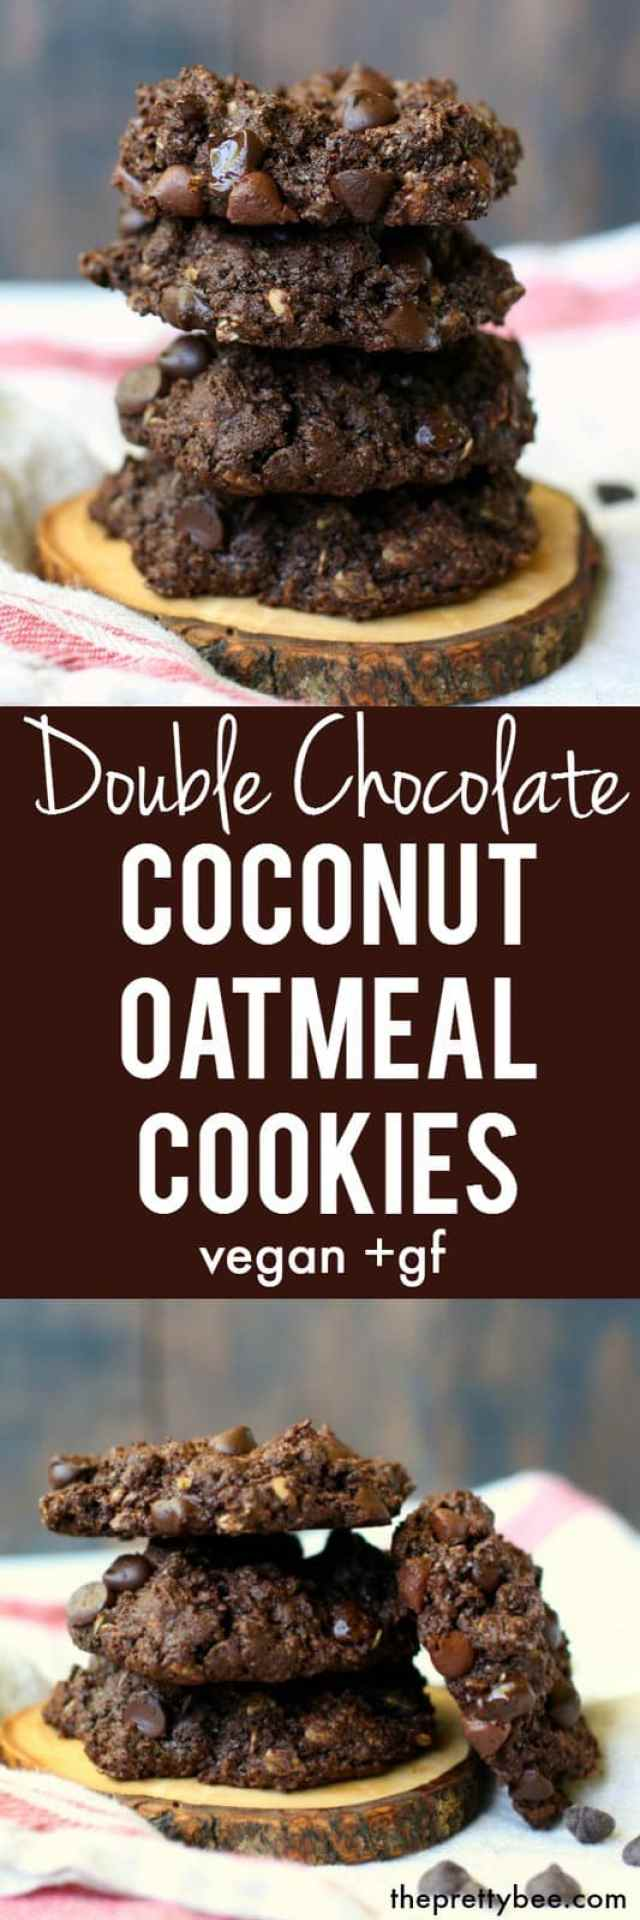 Thick and chewy gluten free double chocolate coconut oatmeal cookies are a delicious and decadent treat!